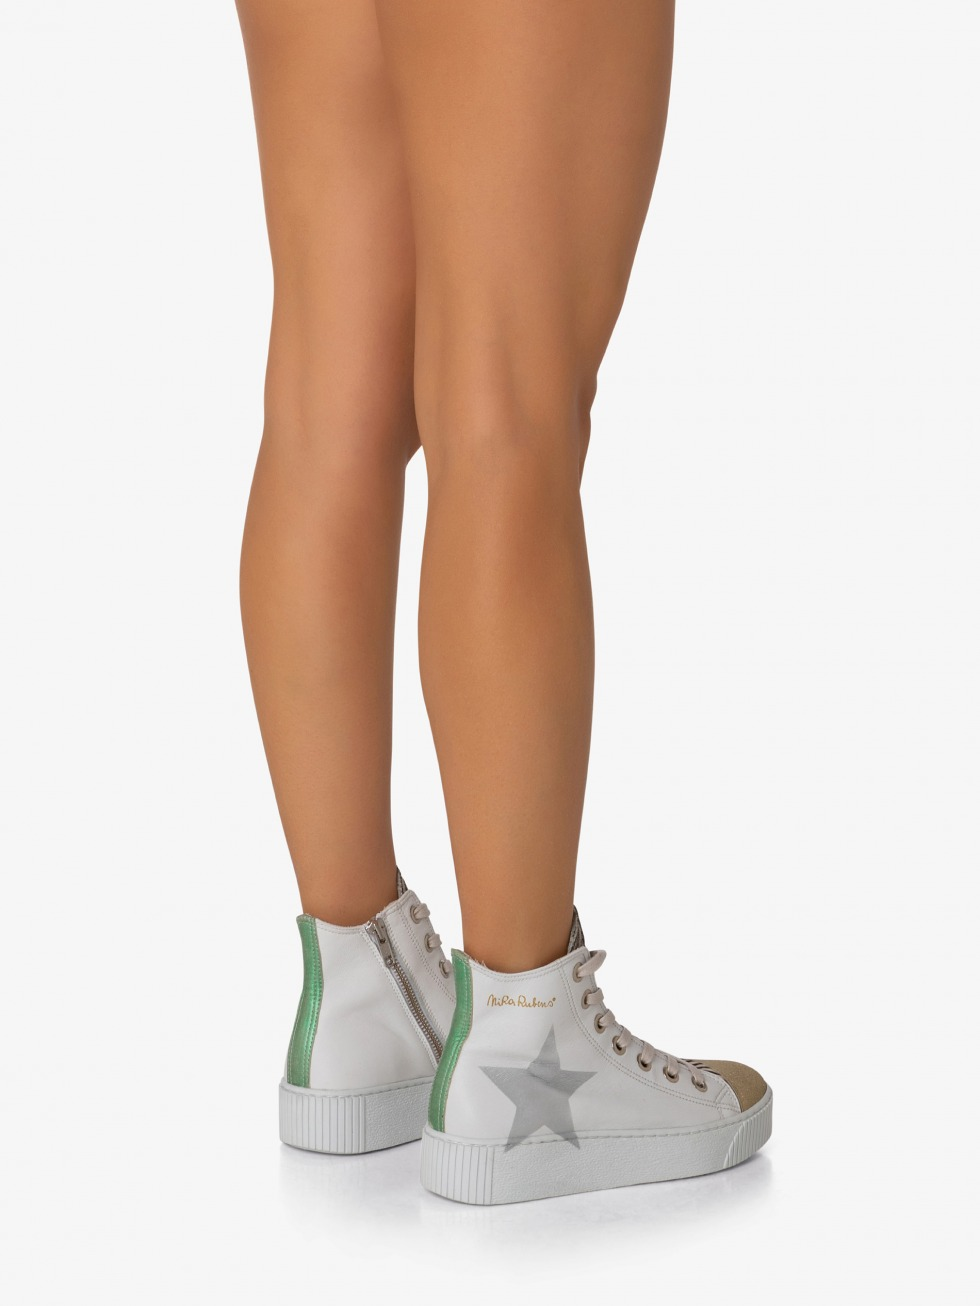 Long Island Sneakers - Emerald Gold Star